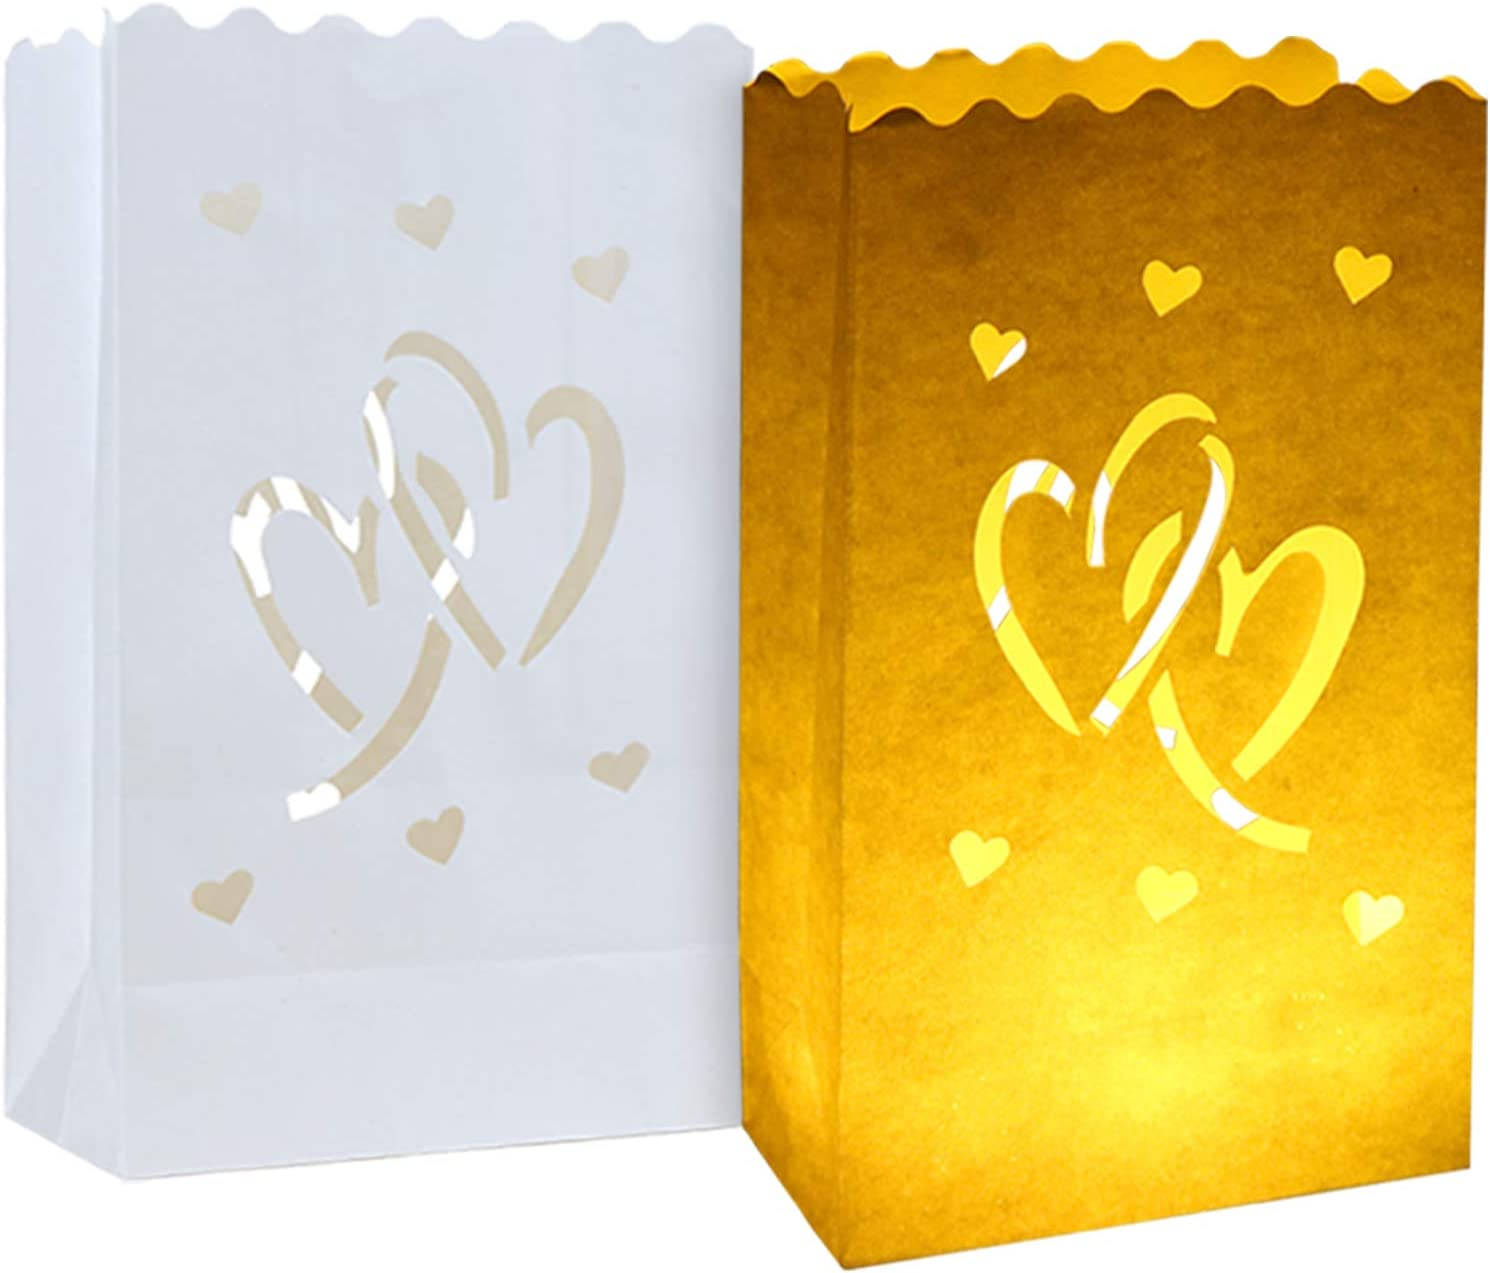 20pcs New Orleans Mall White Luminary Candle Sale Bags Bag Special Lantern wi